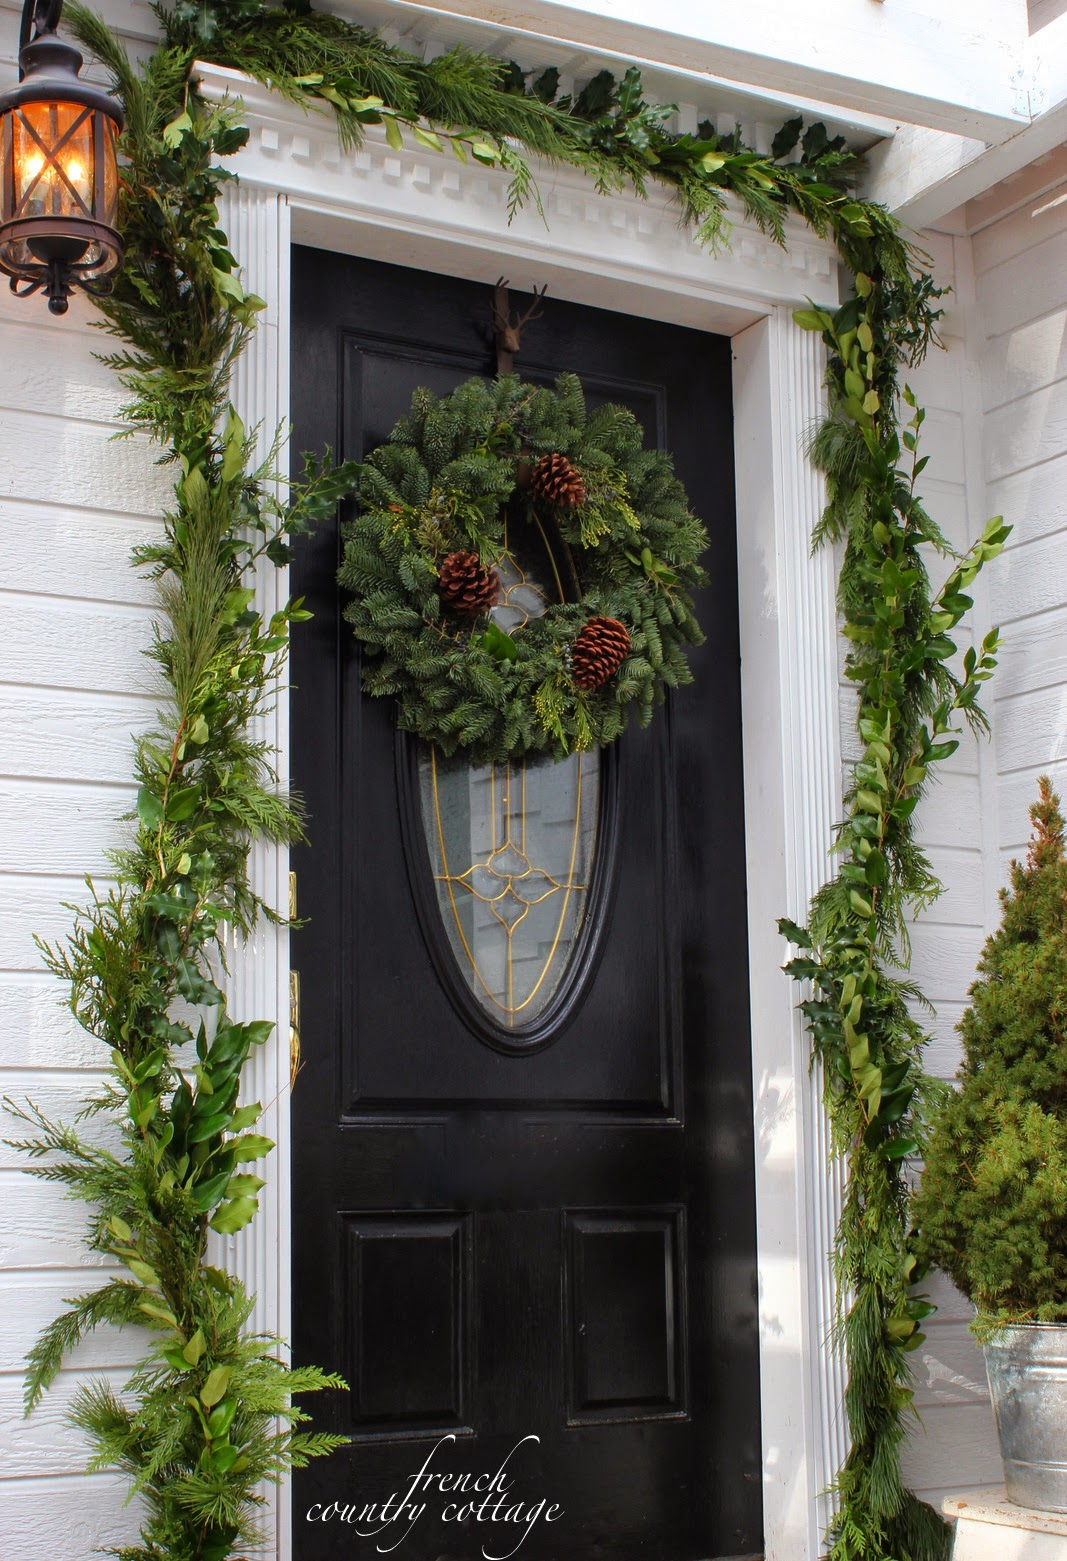 Holiday Ready Home Amp A Treat French Country Cottage